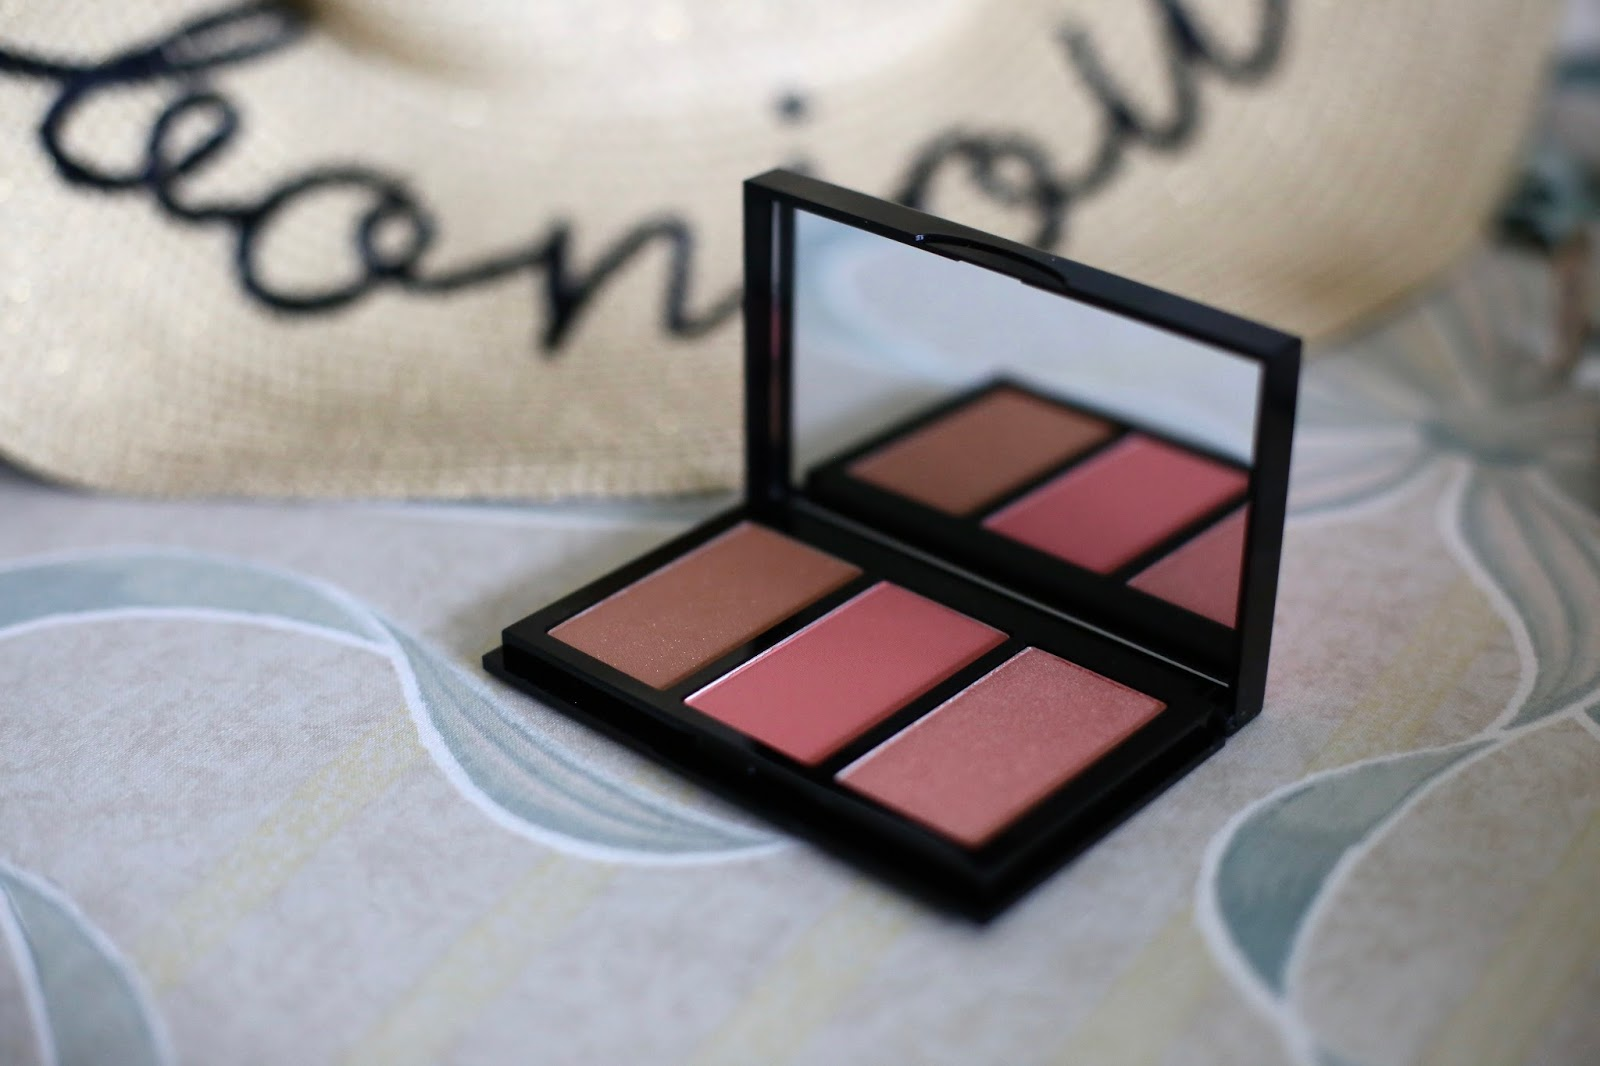 Bobbi brown illuminating cheek palette